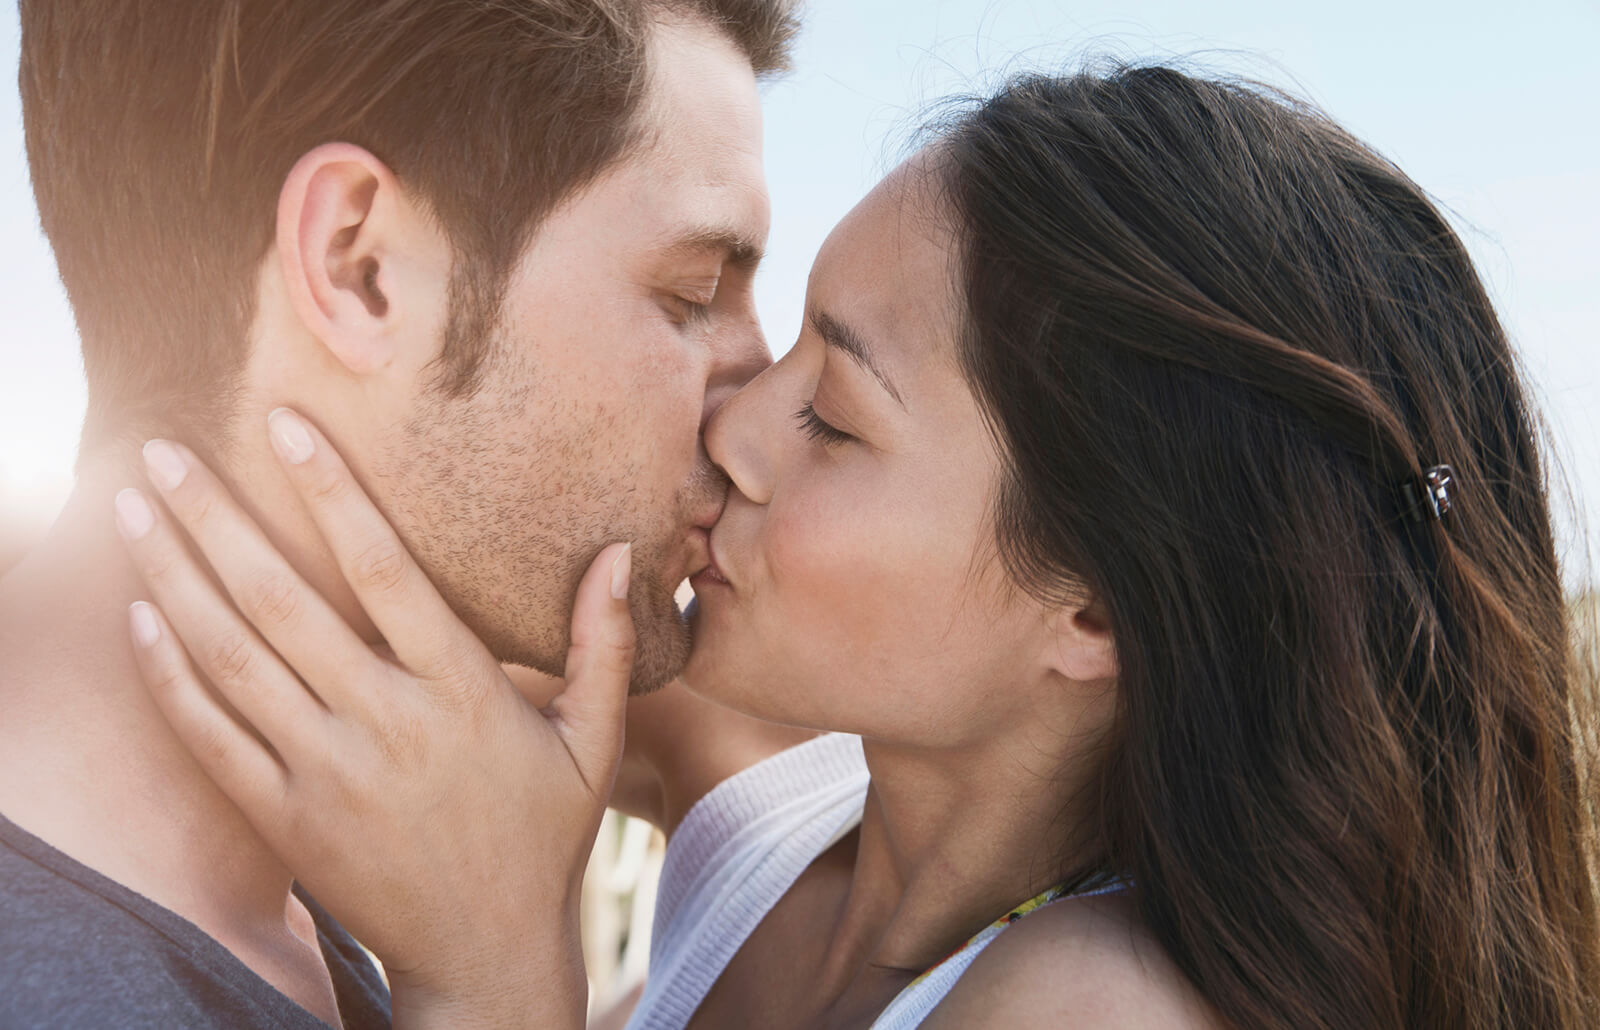 The technique of a proper kiss. Kiss with tongue